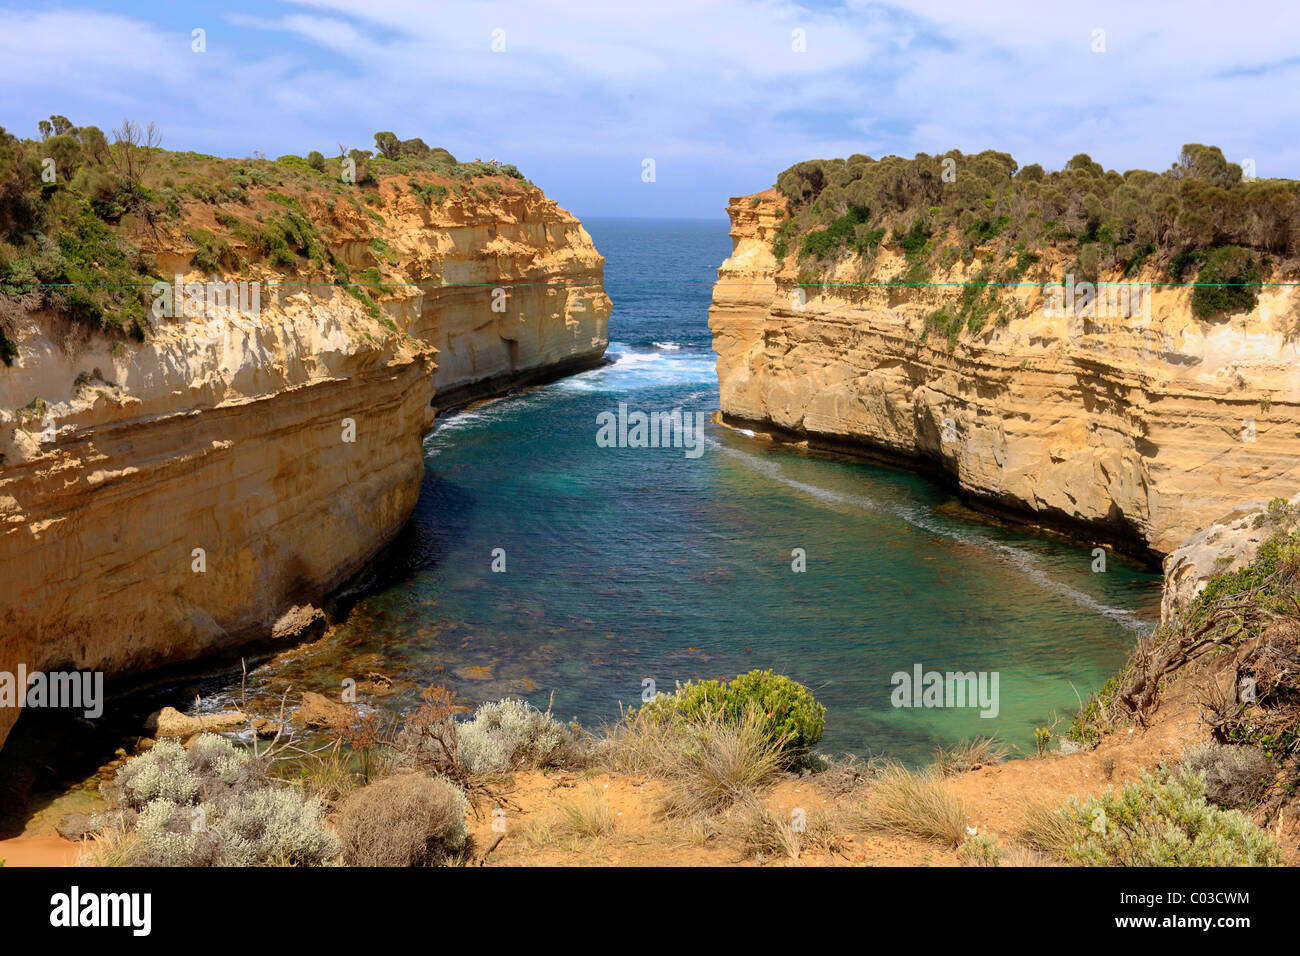 Loch Ard Gorge, Port Campbell National Park, Victoria, Australie Photo Stock